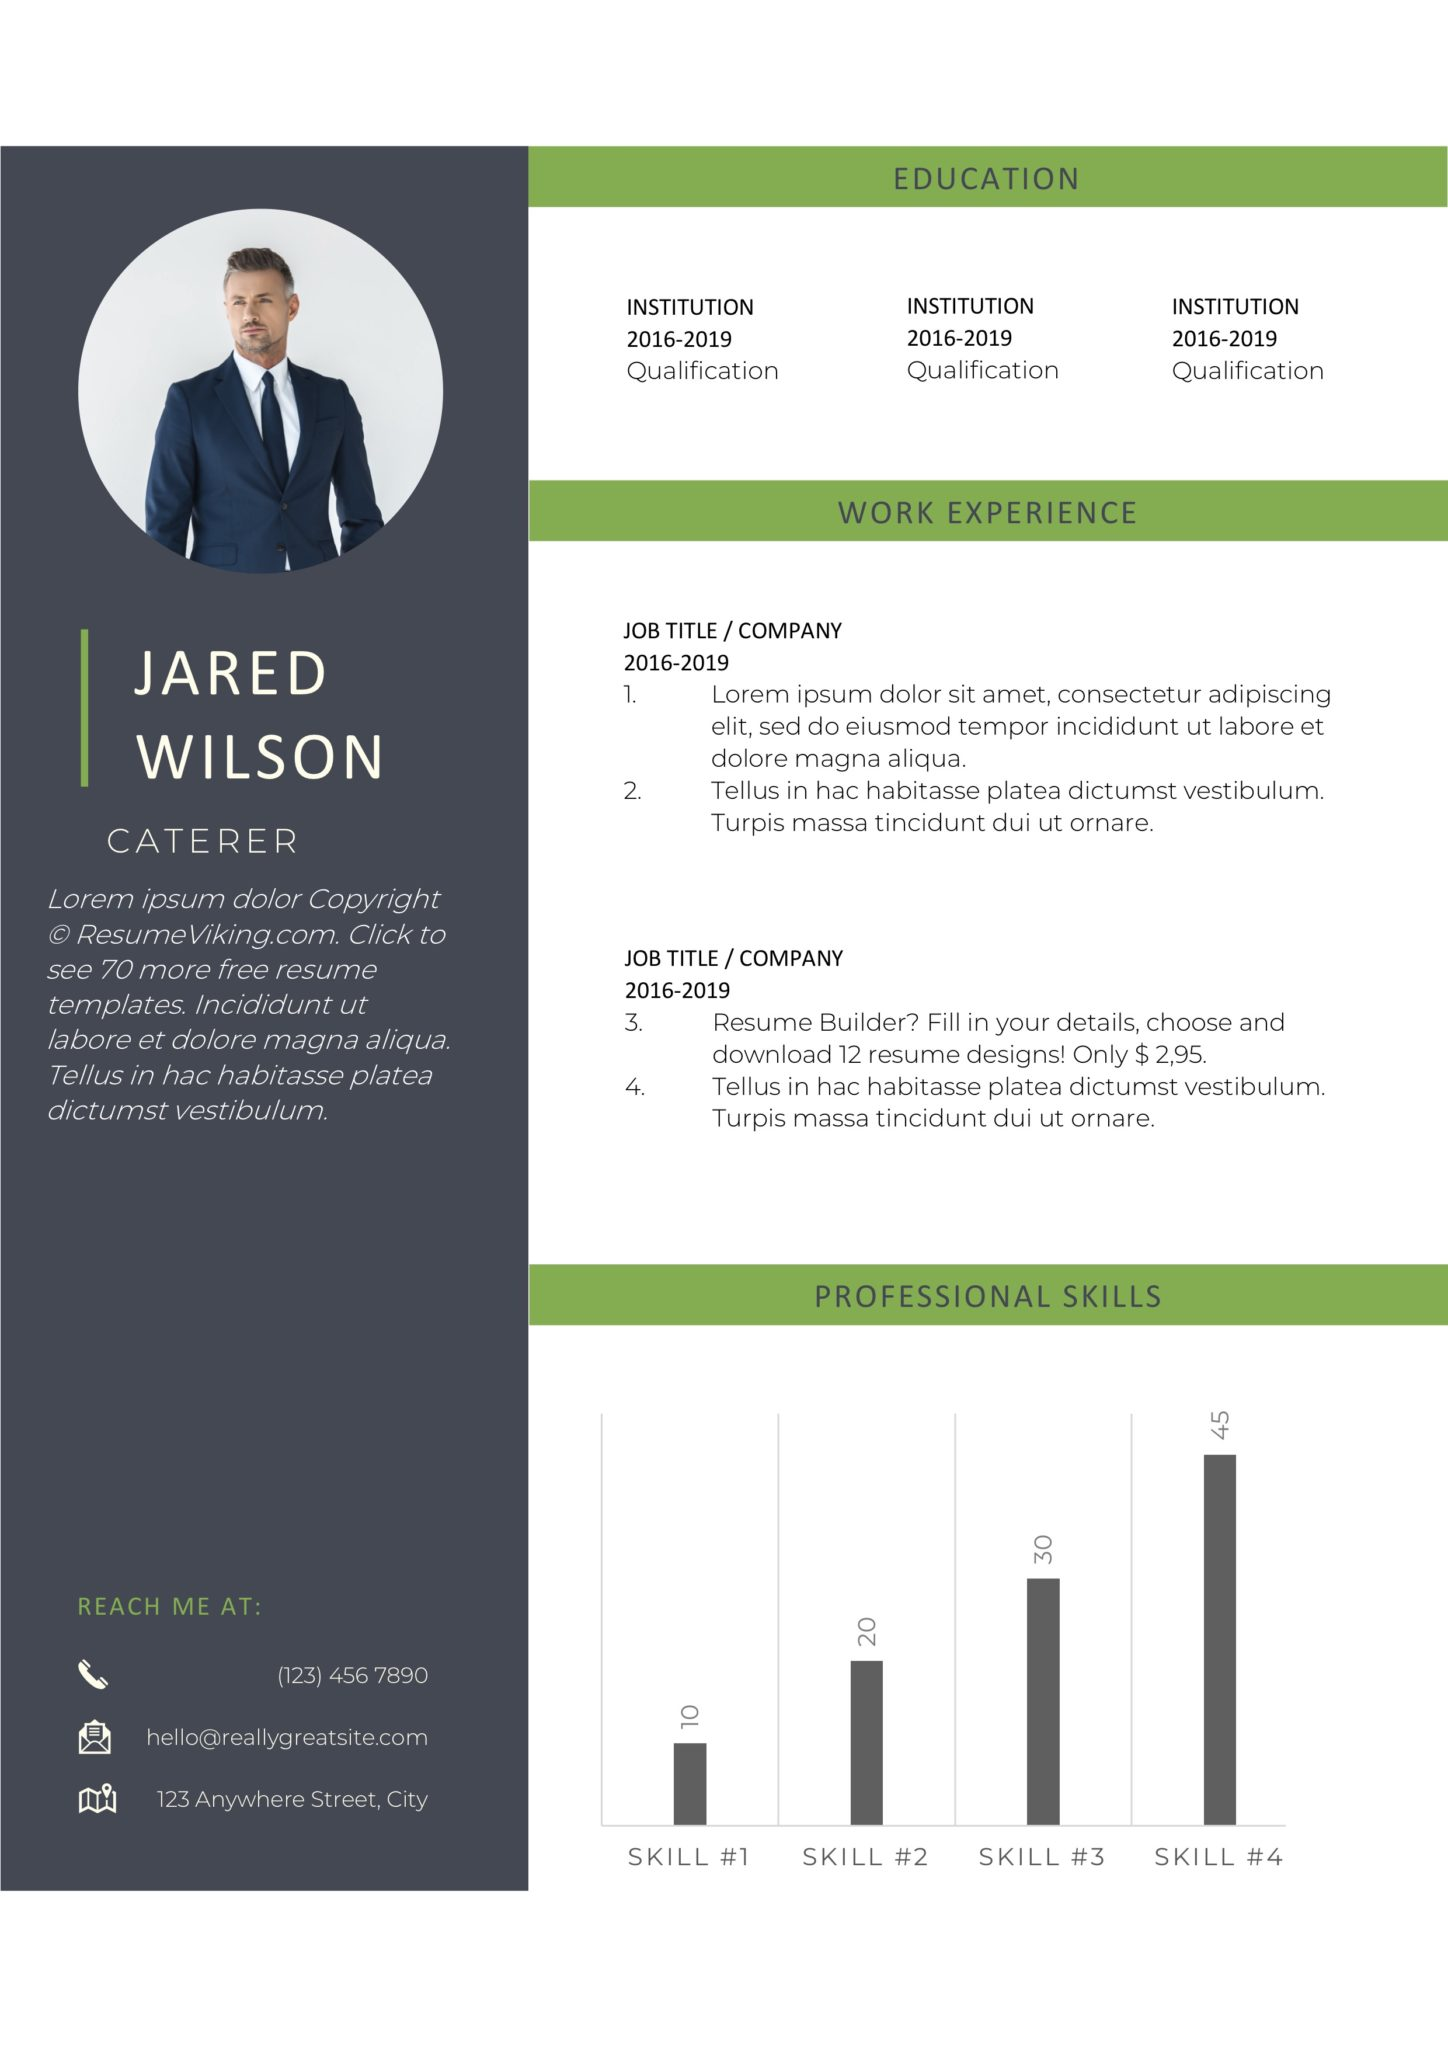 free word resume templates in ms personal template resumeviking scaled summer internship Resume Personal Resume Template Free